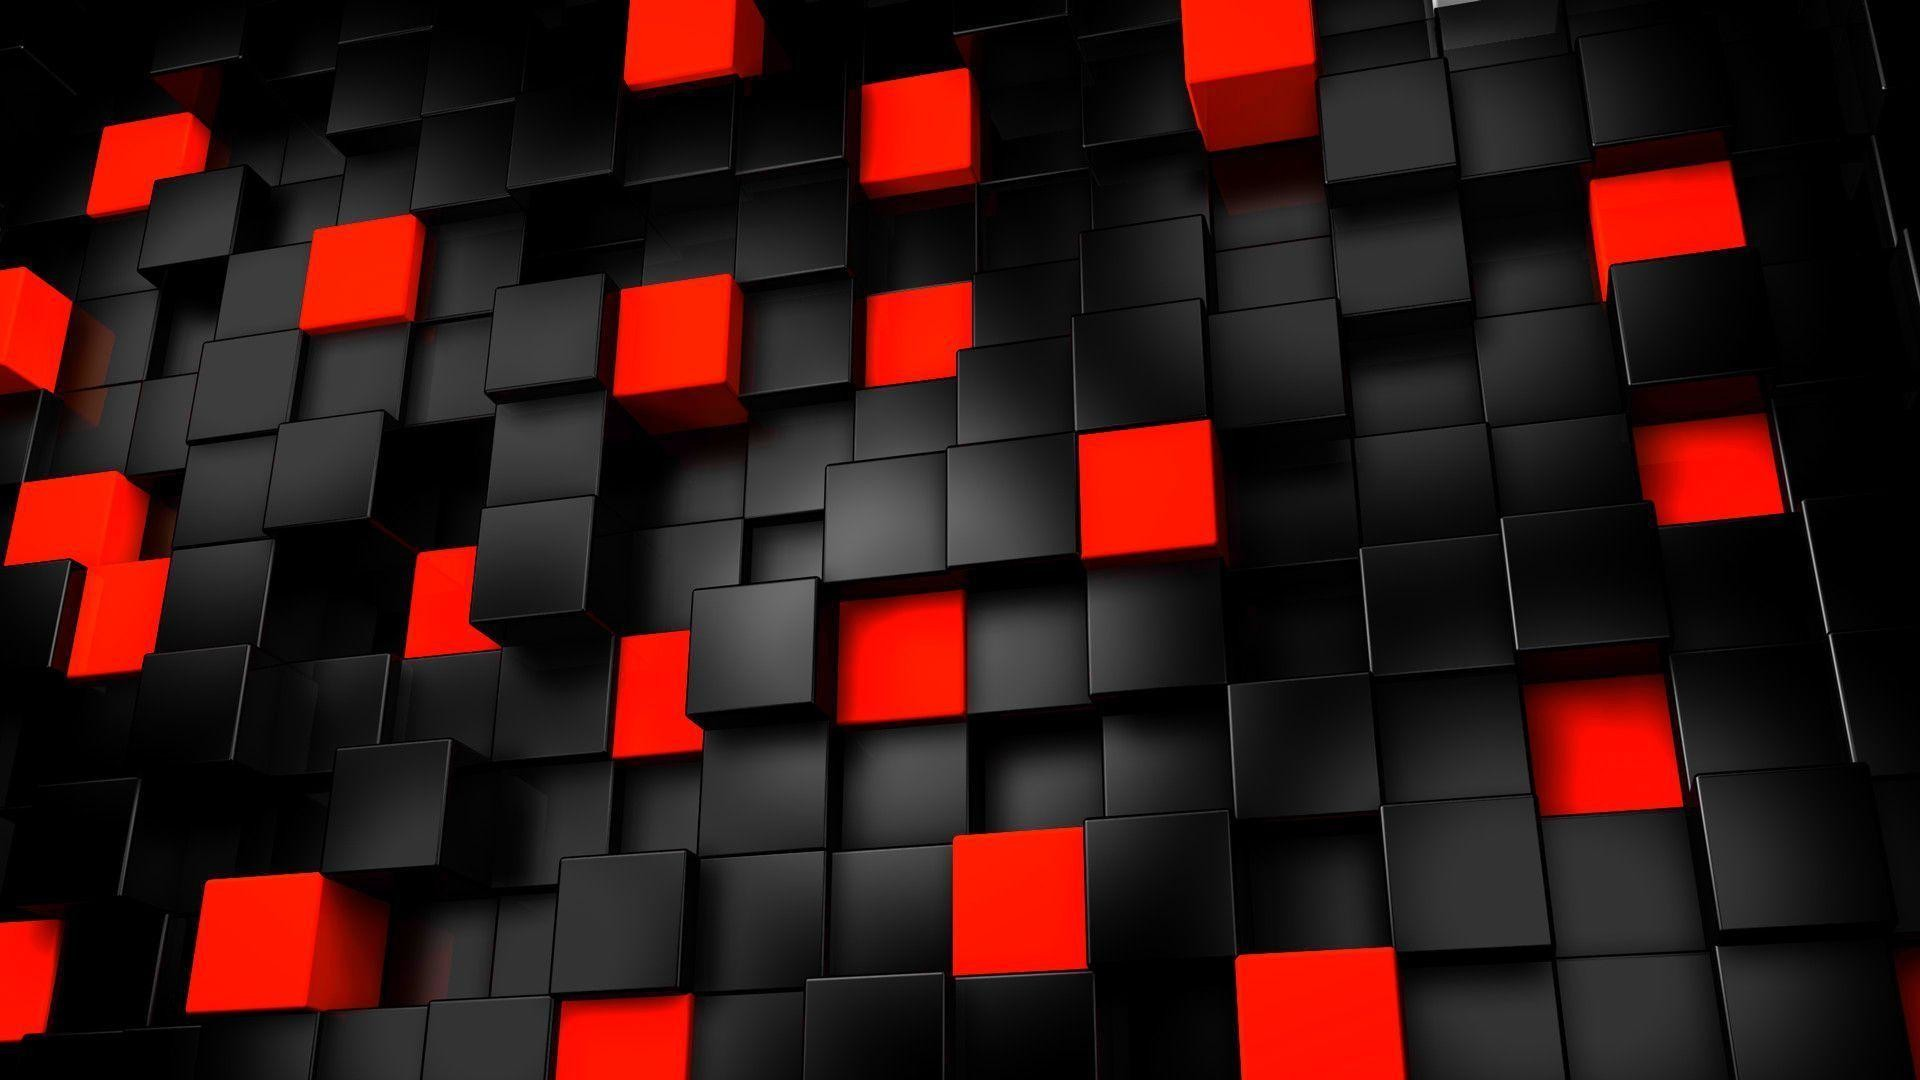 Wallpapers For > Black And Red Wallpaper Abstract